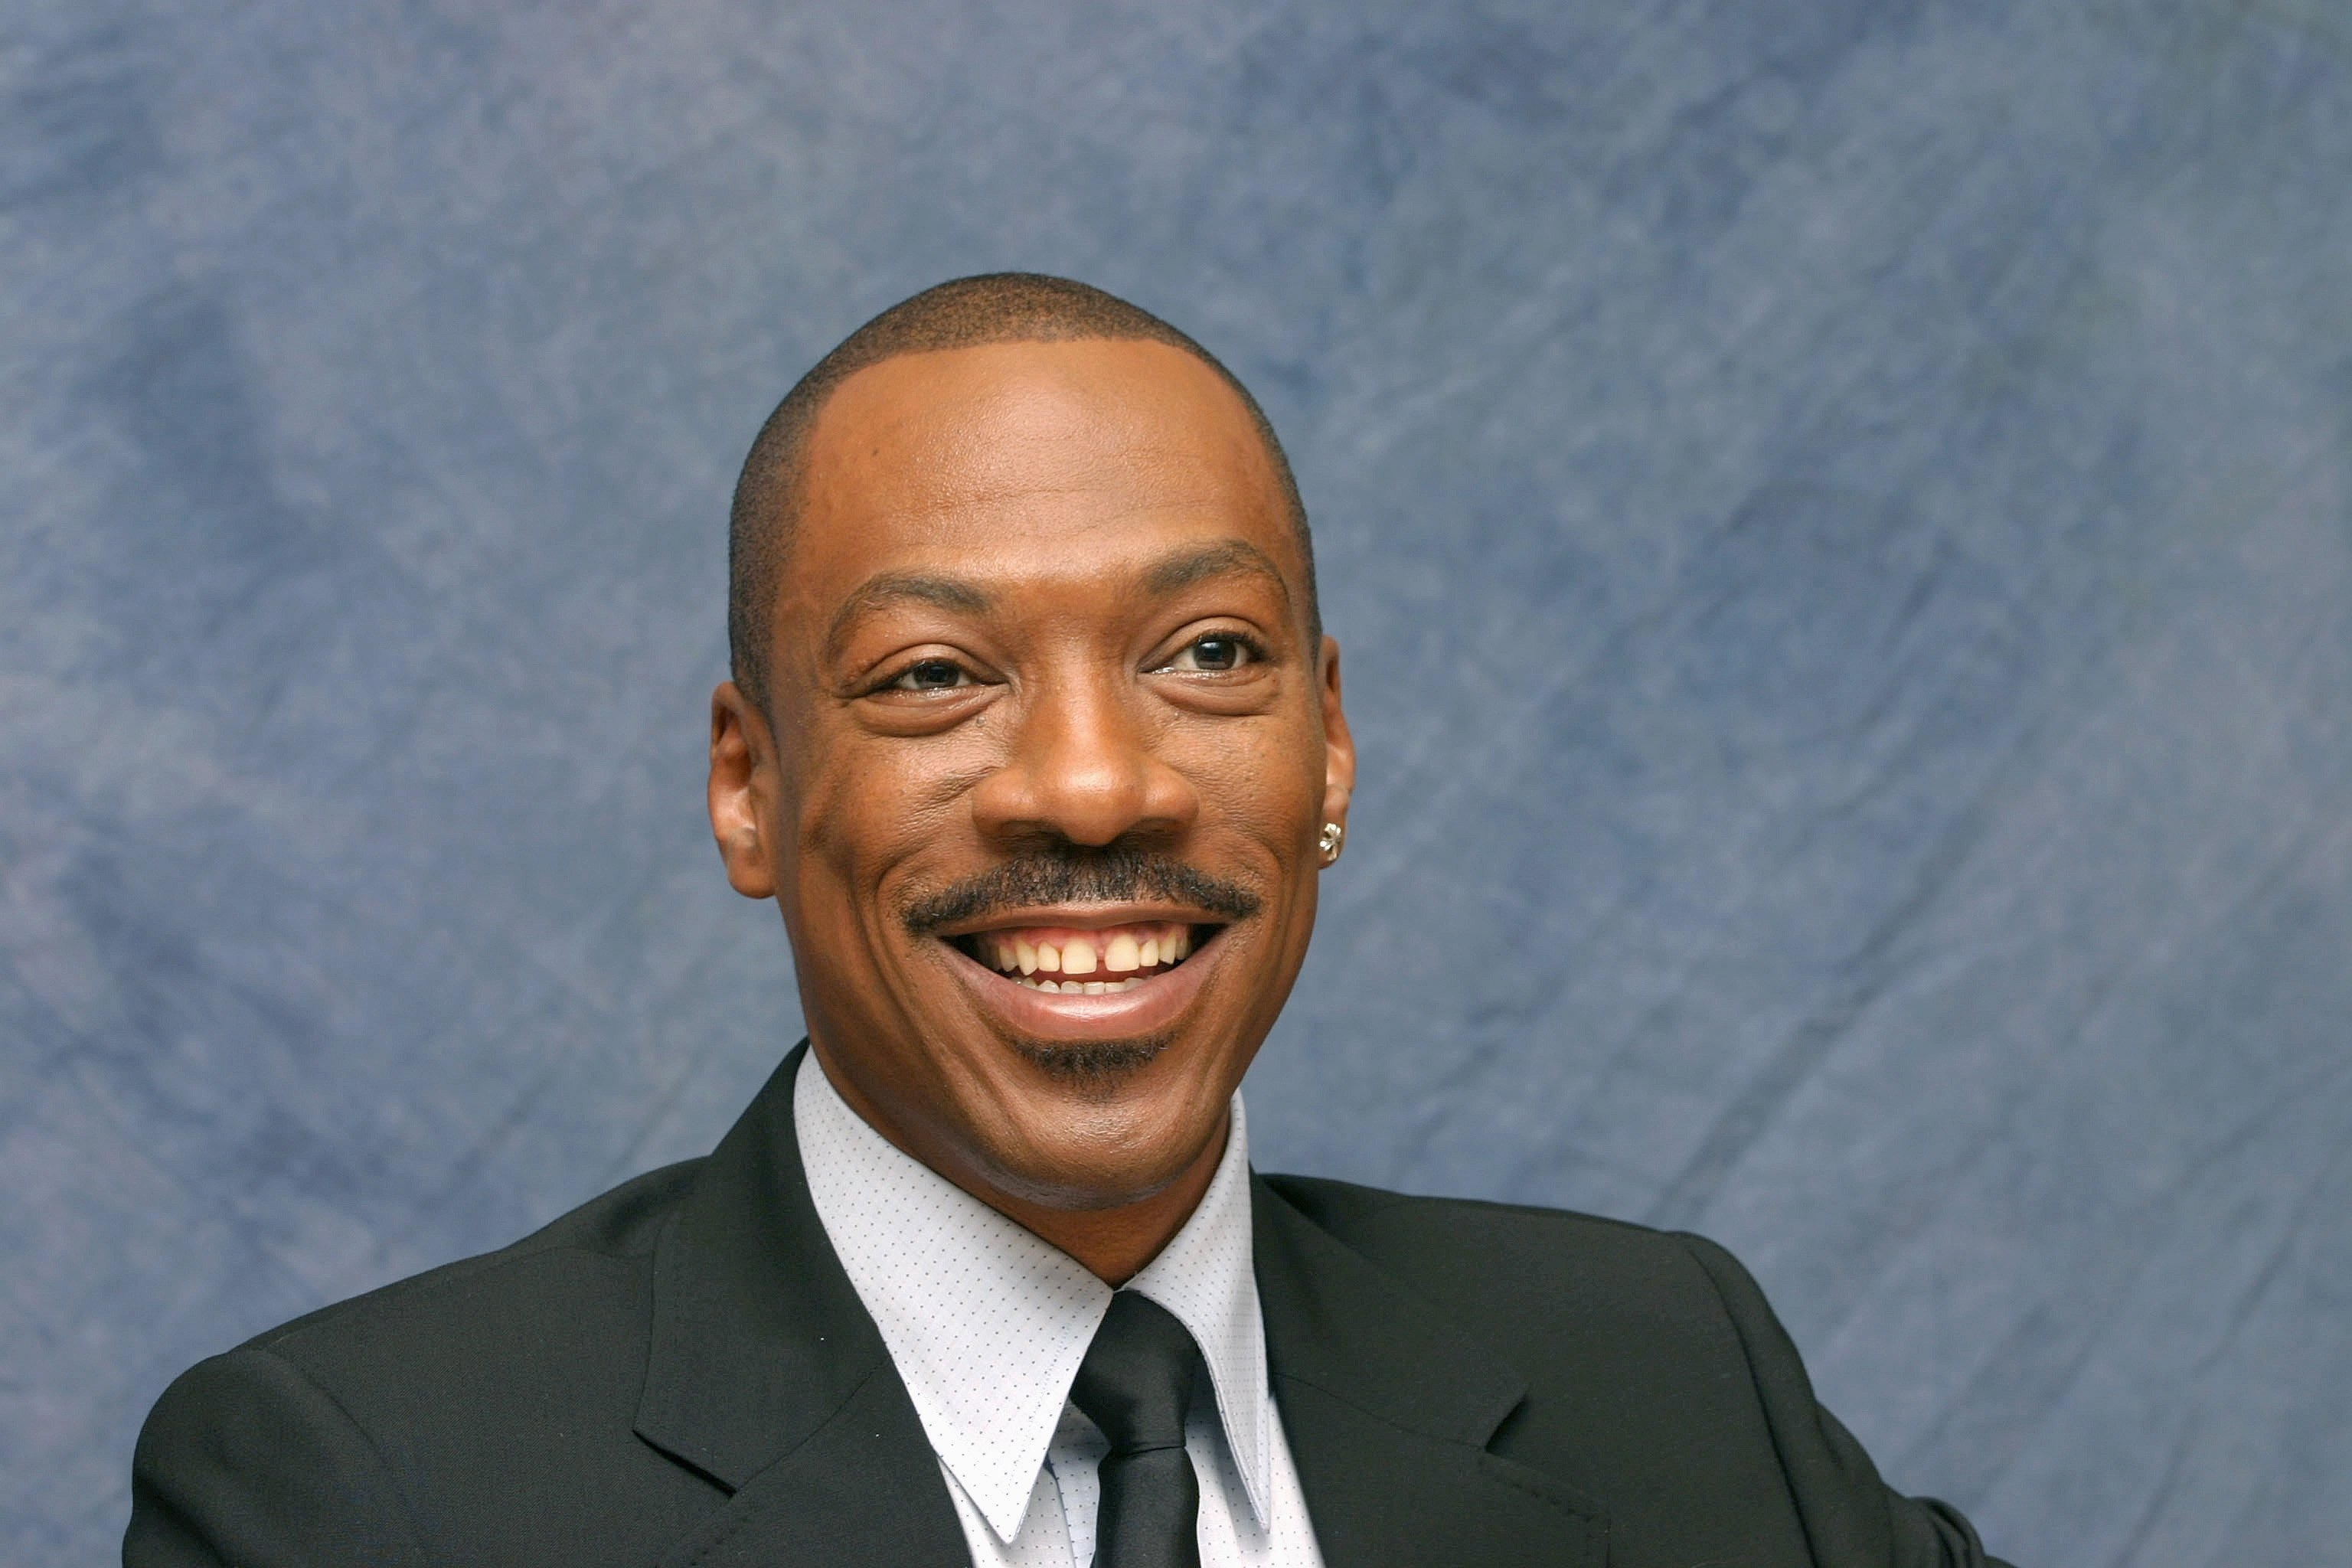 A portrait of Eddie Murphy taken in November 2006. | Photo: Getty Images